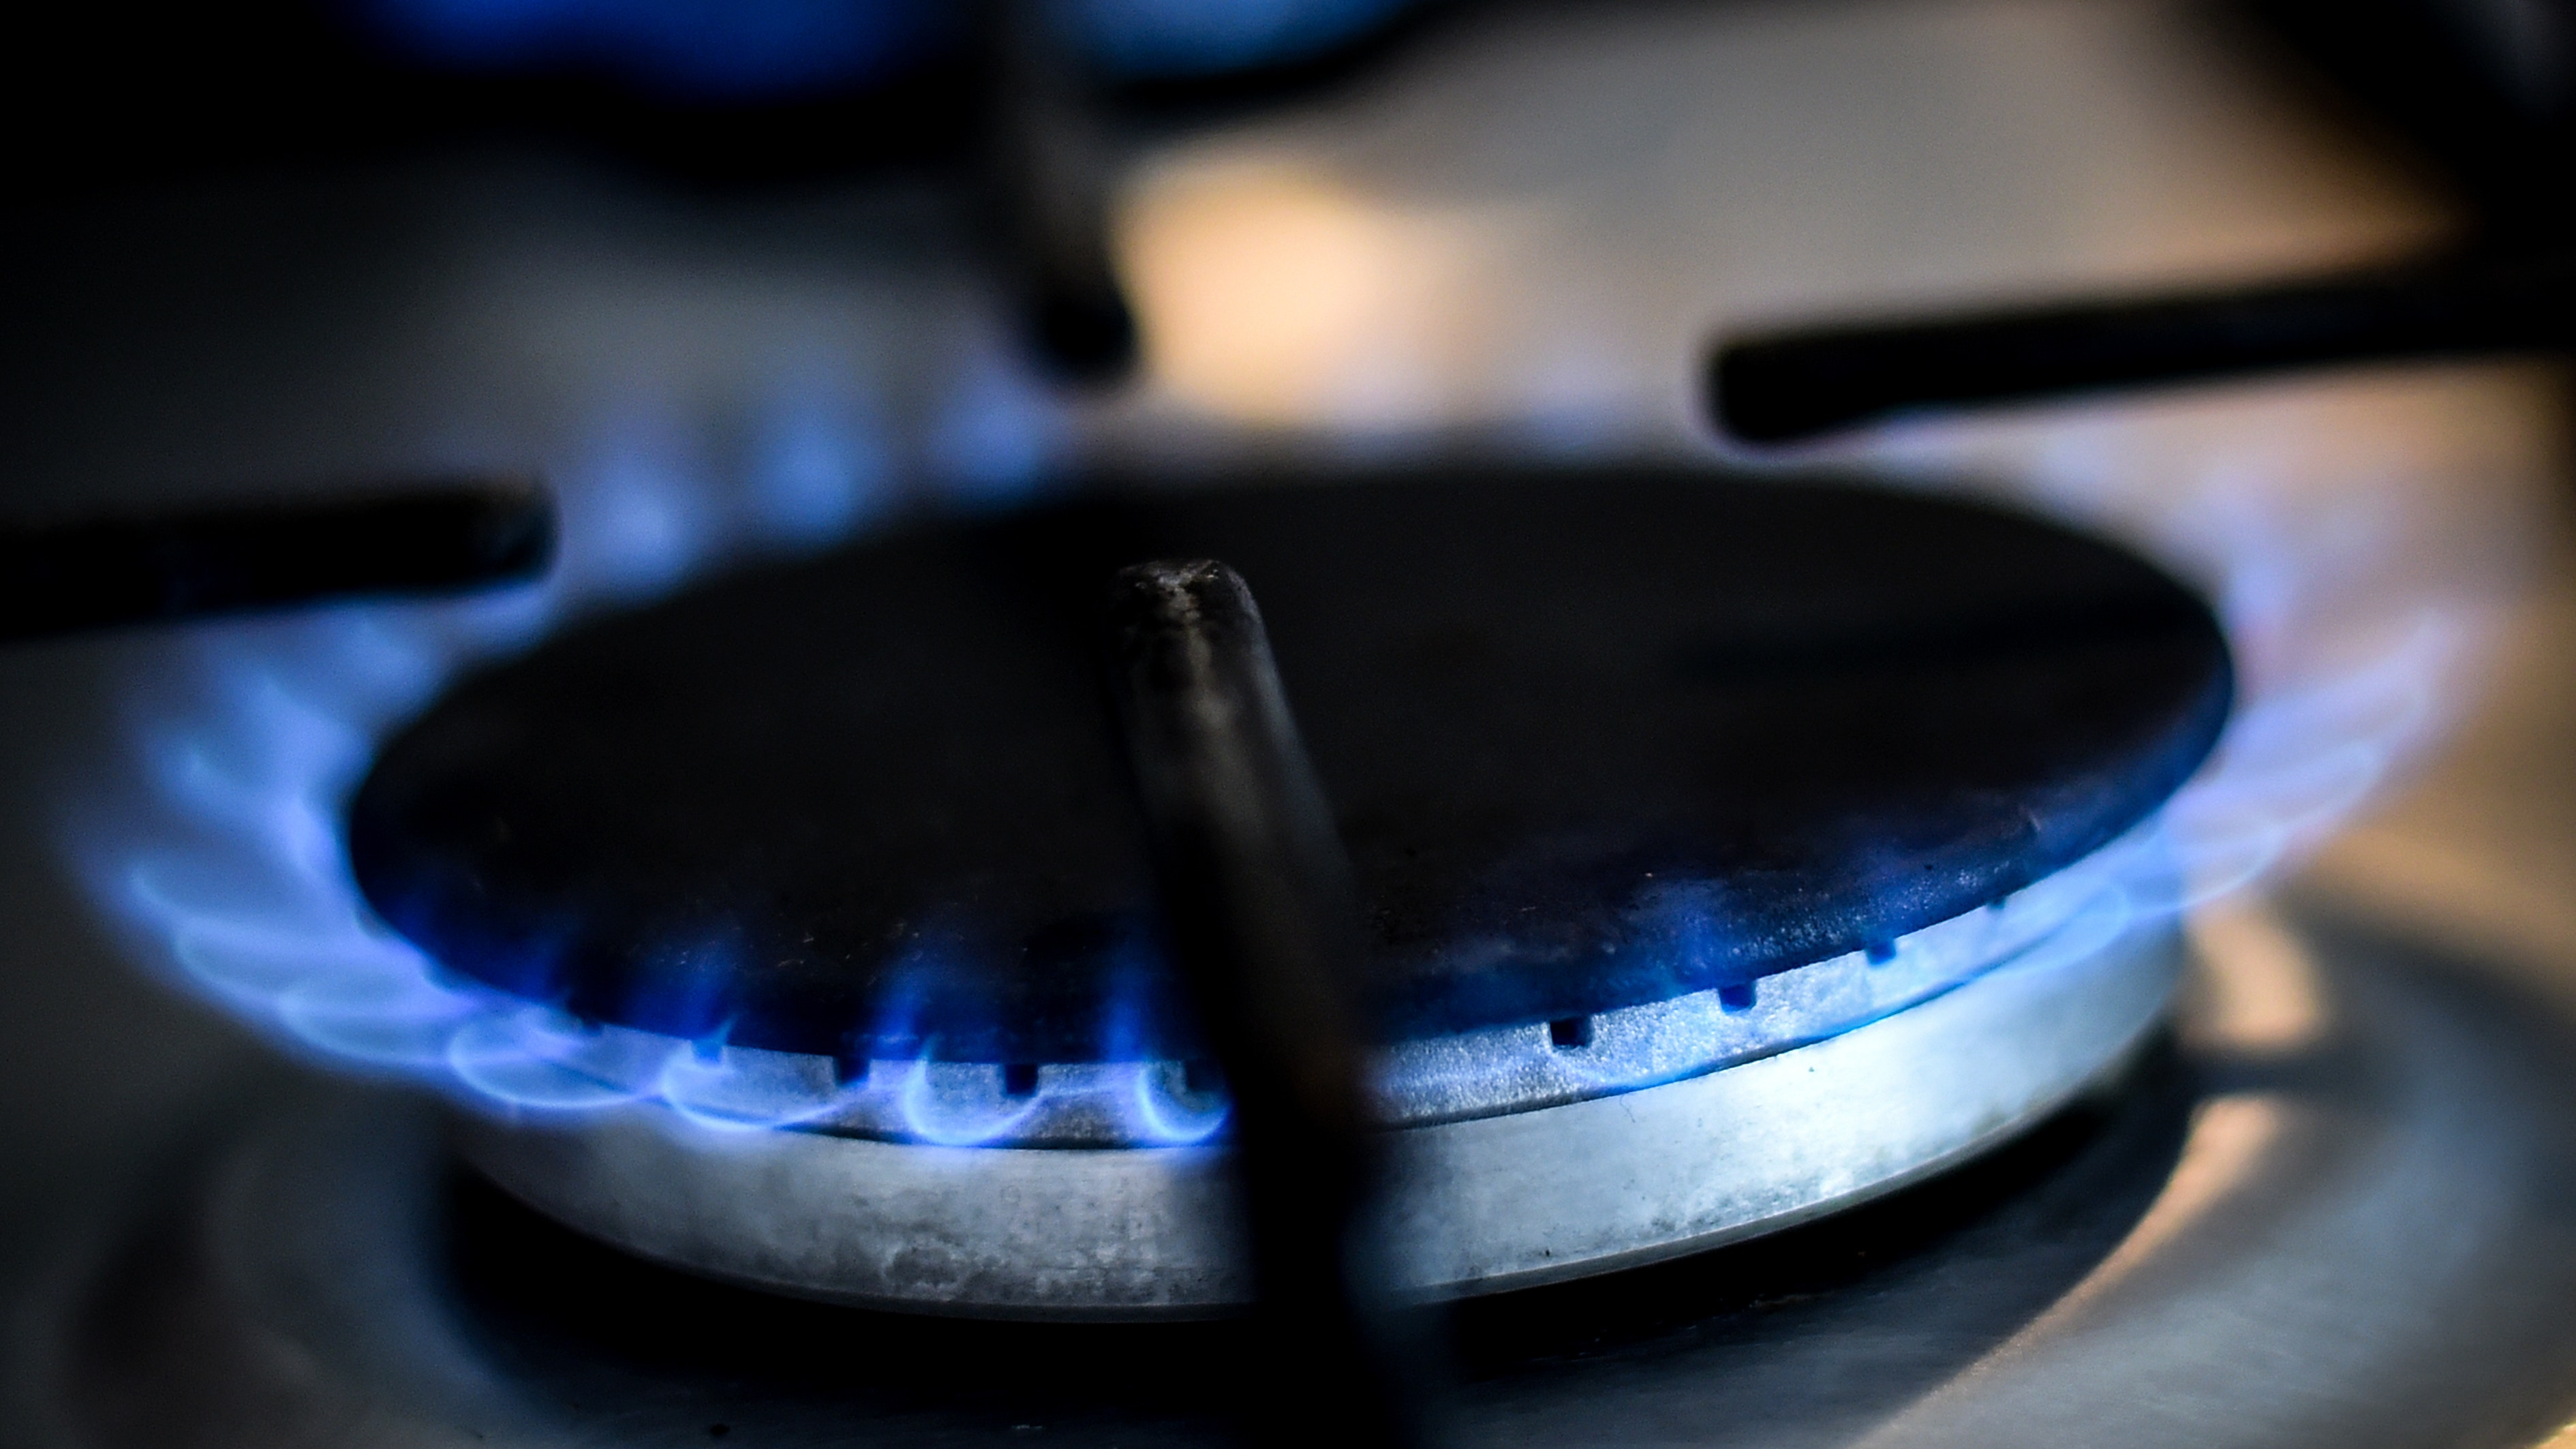 United Kingdom gas supplies struggling to meet demand, the National Grid has warned